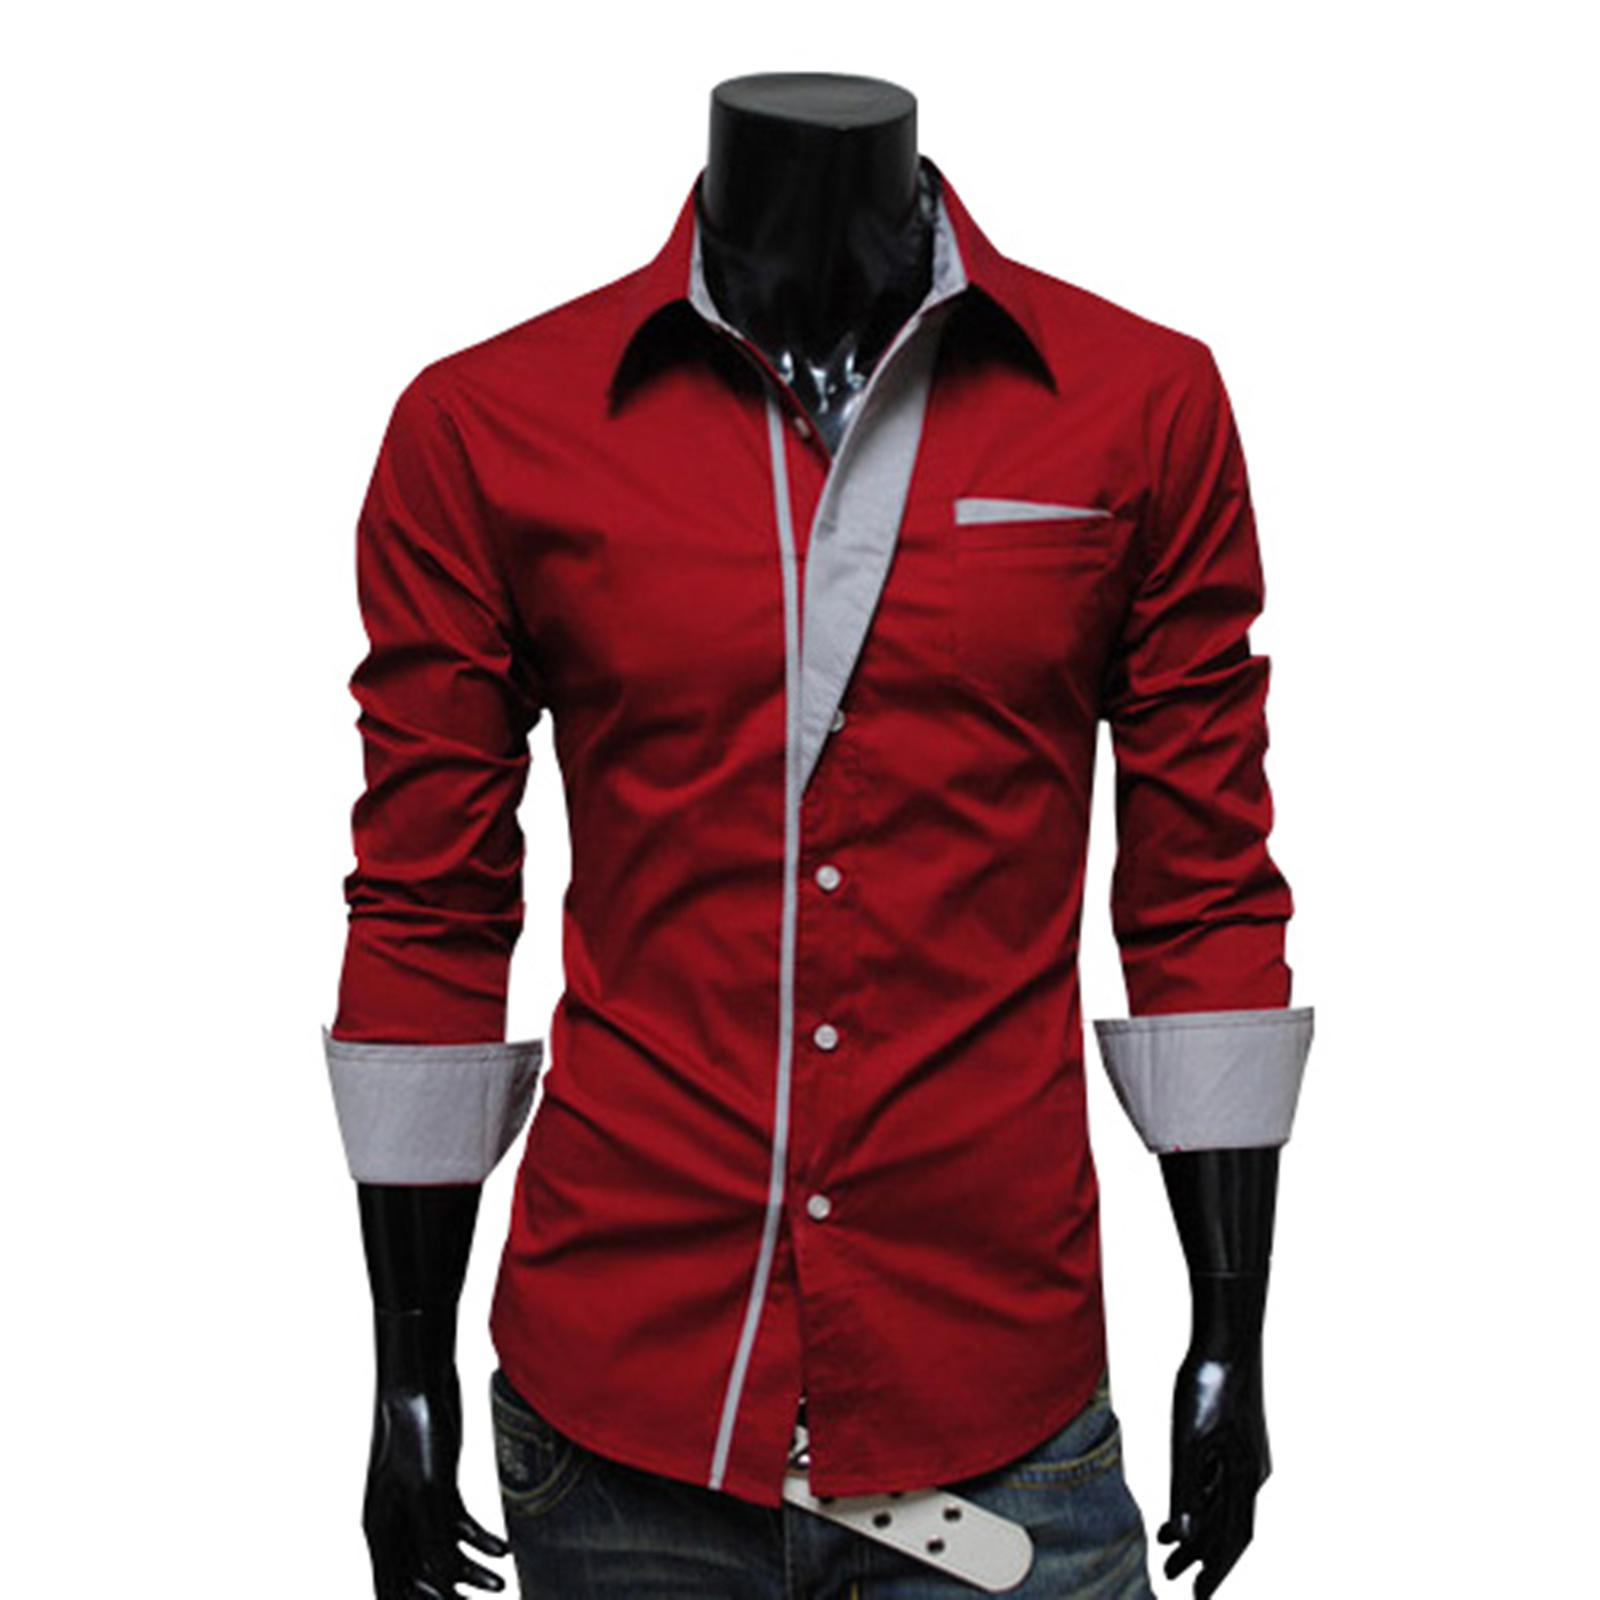 Designer Clothes For Men On Discount Cheap Dress Shirts Casual